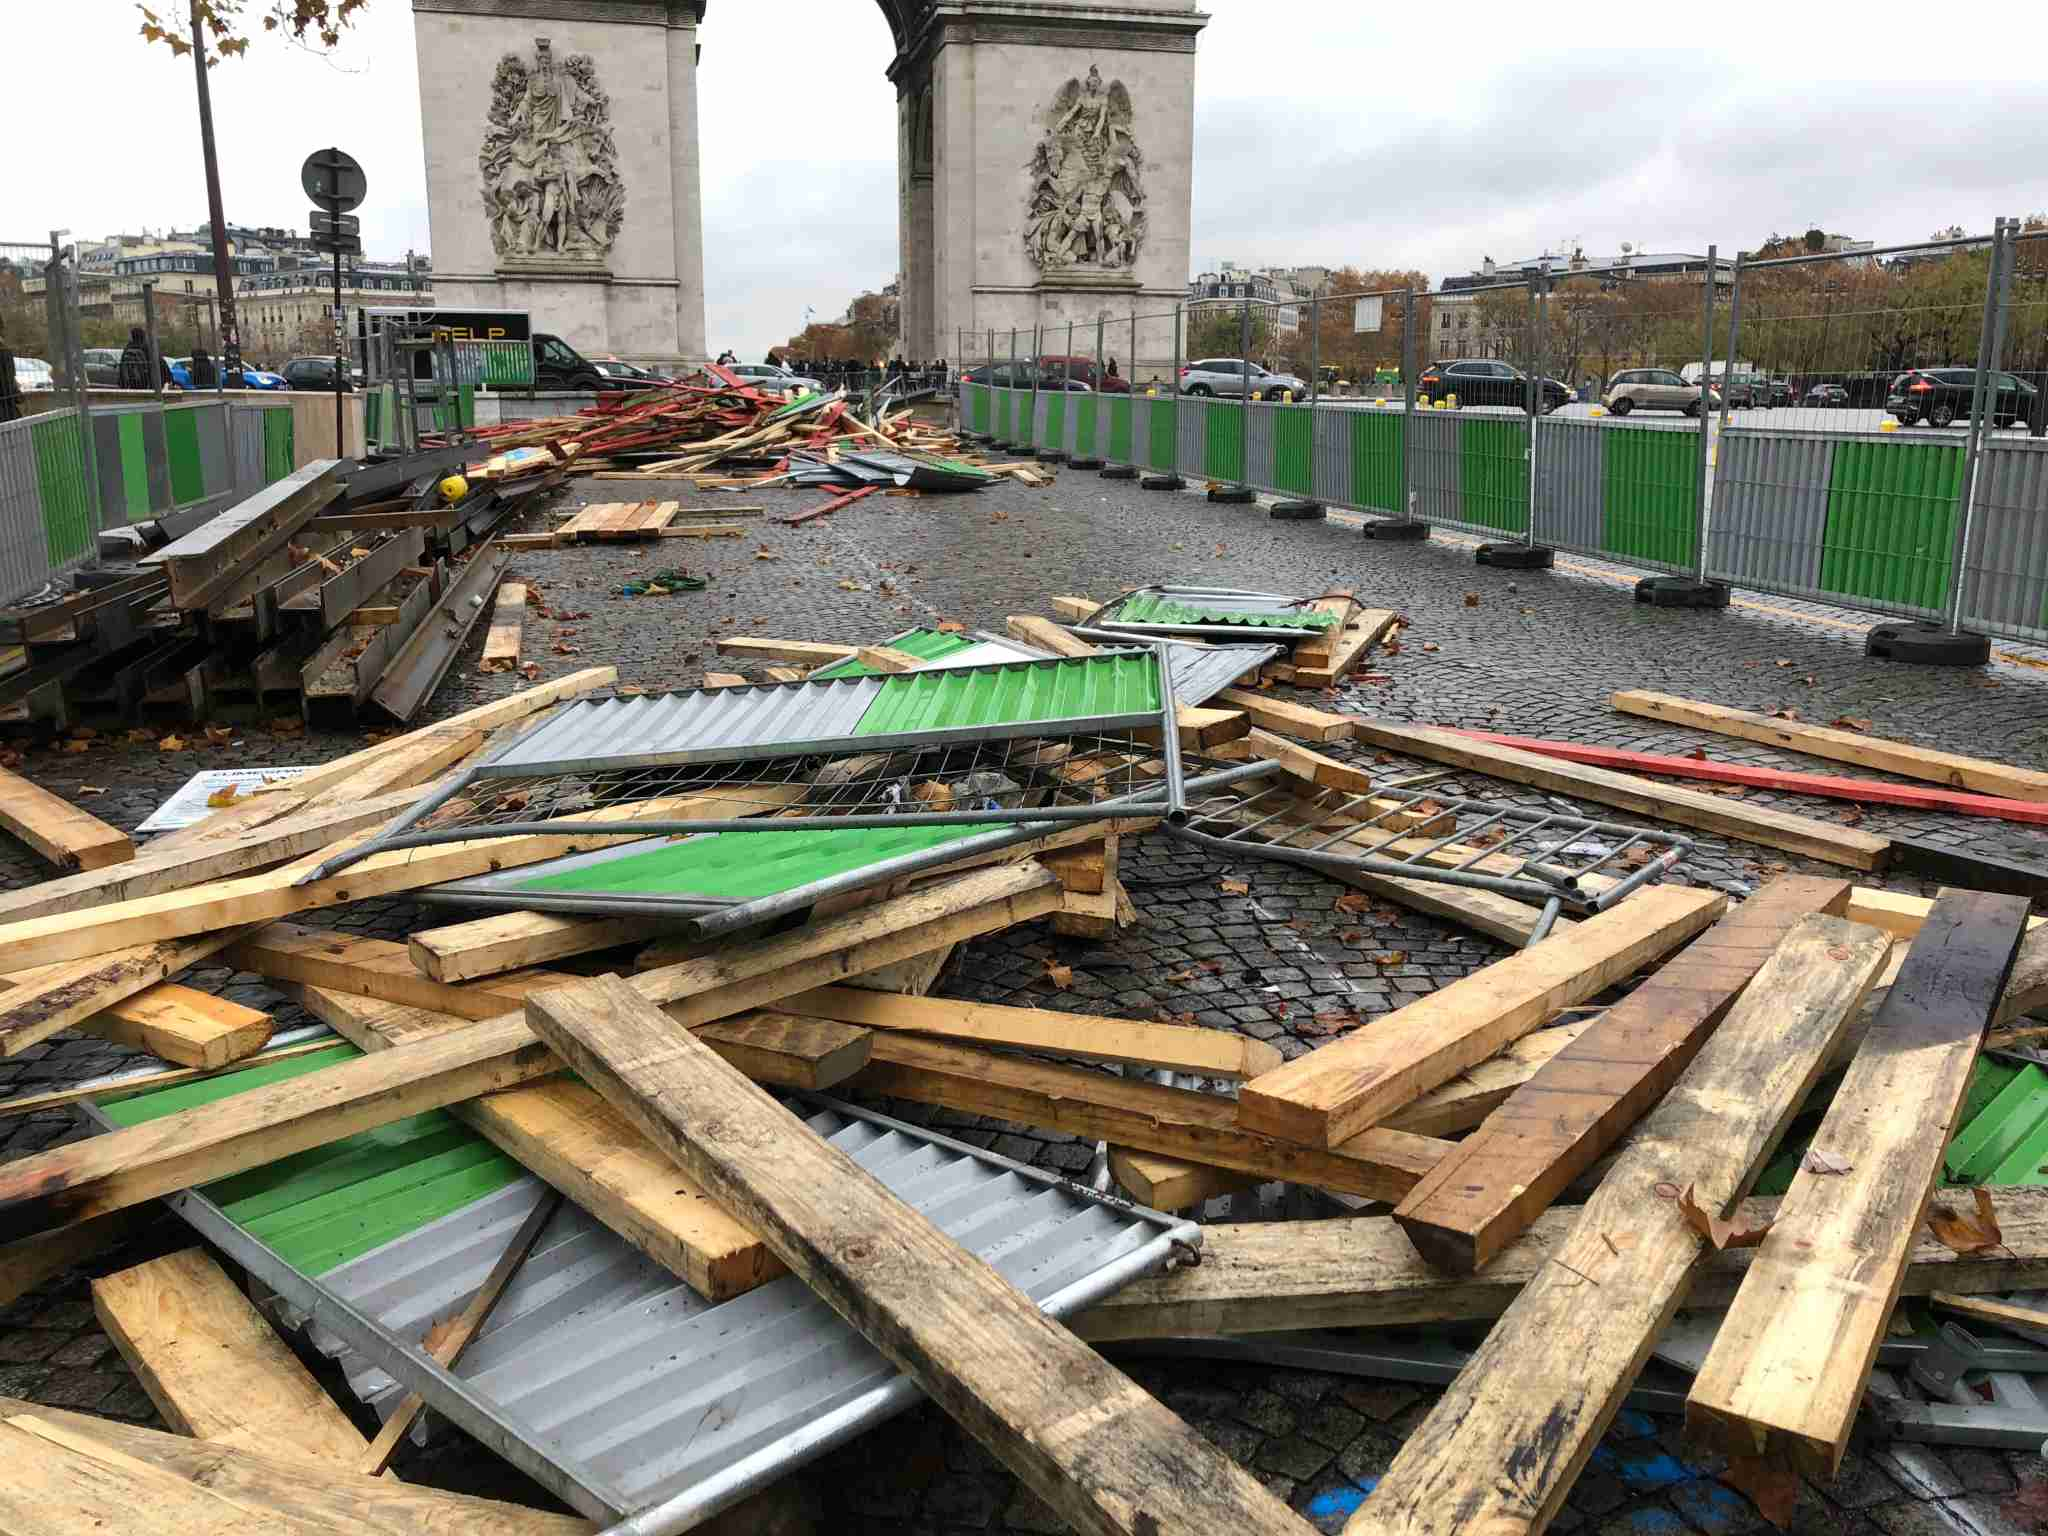 Barricades are cleaned up following a day of violent protests in Paris (Image via Edward Pizazrello)